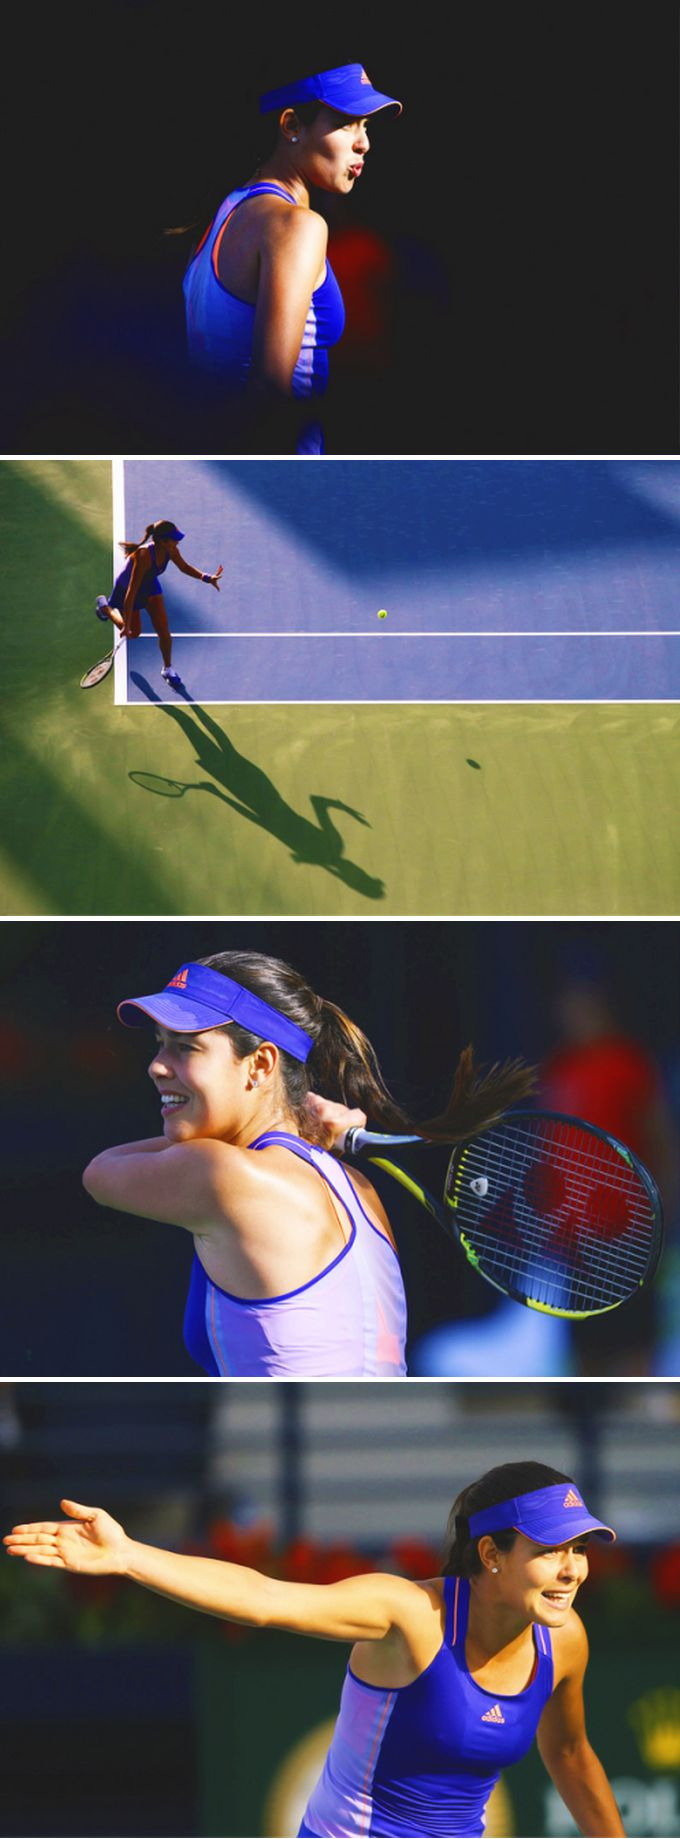 Ana Ivanovic in the adidas Spring adizero Dress - Get her gear here: http://www.tennis-warehouse.com/player.html?ccode=AIVAN